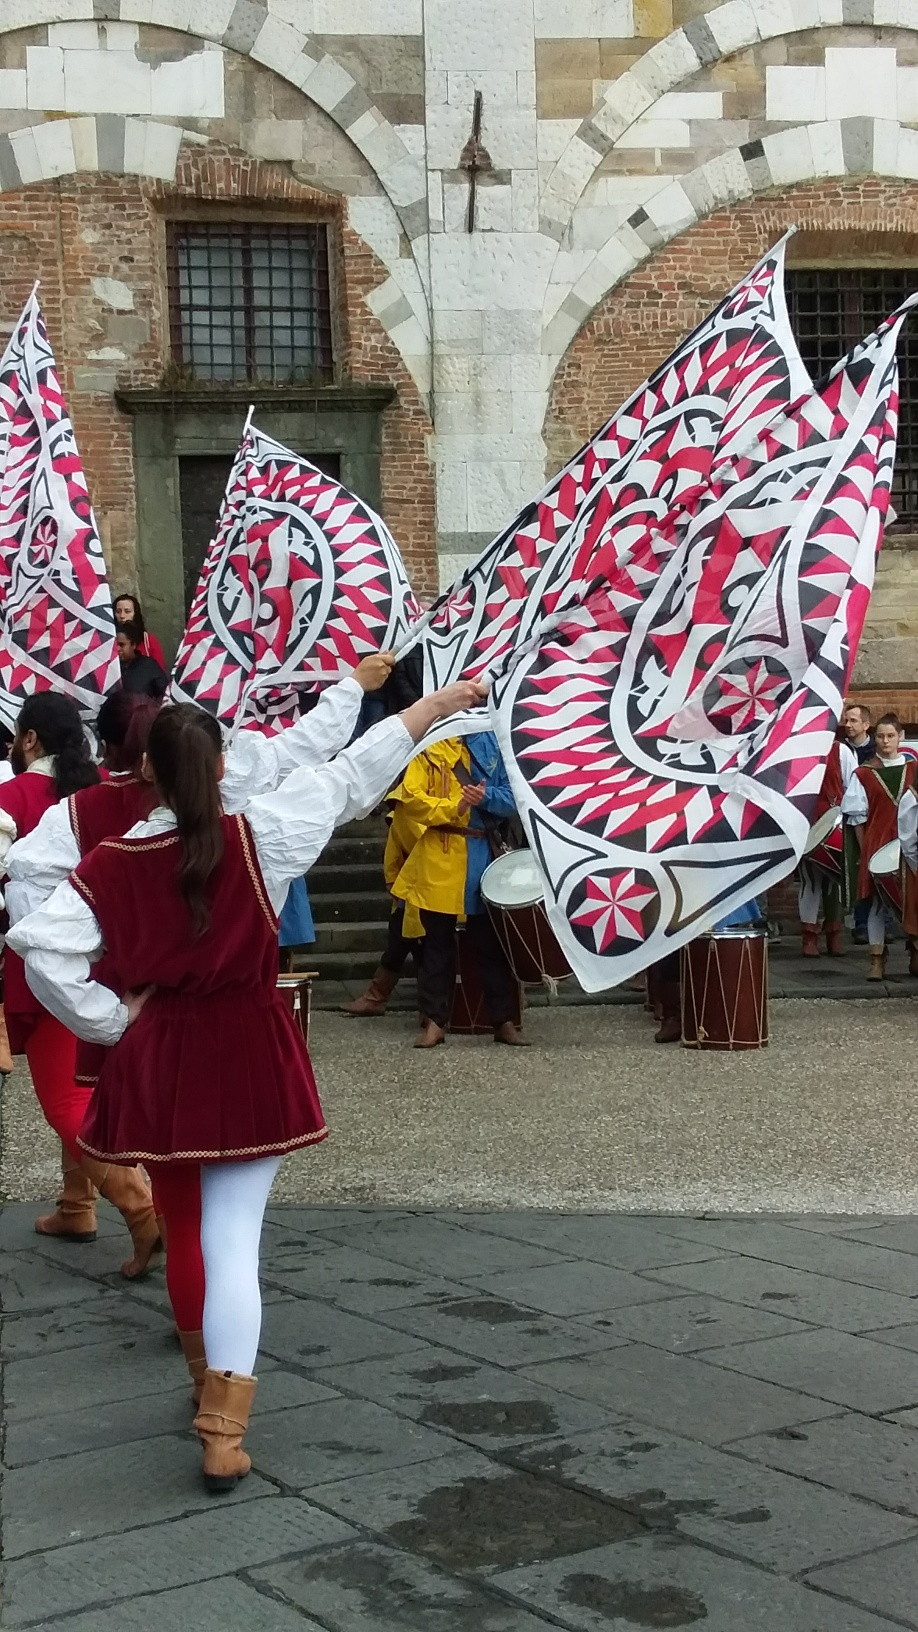 Lanciatori di bandiera  (flag throwers) - a crowd favorite as they toss their flags high into the air